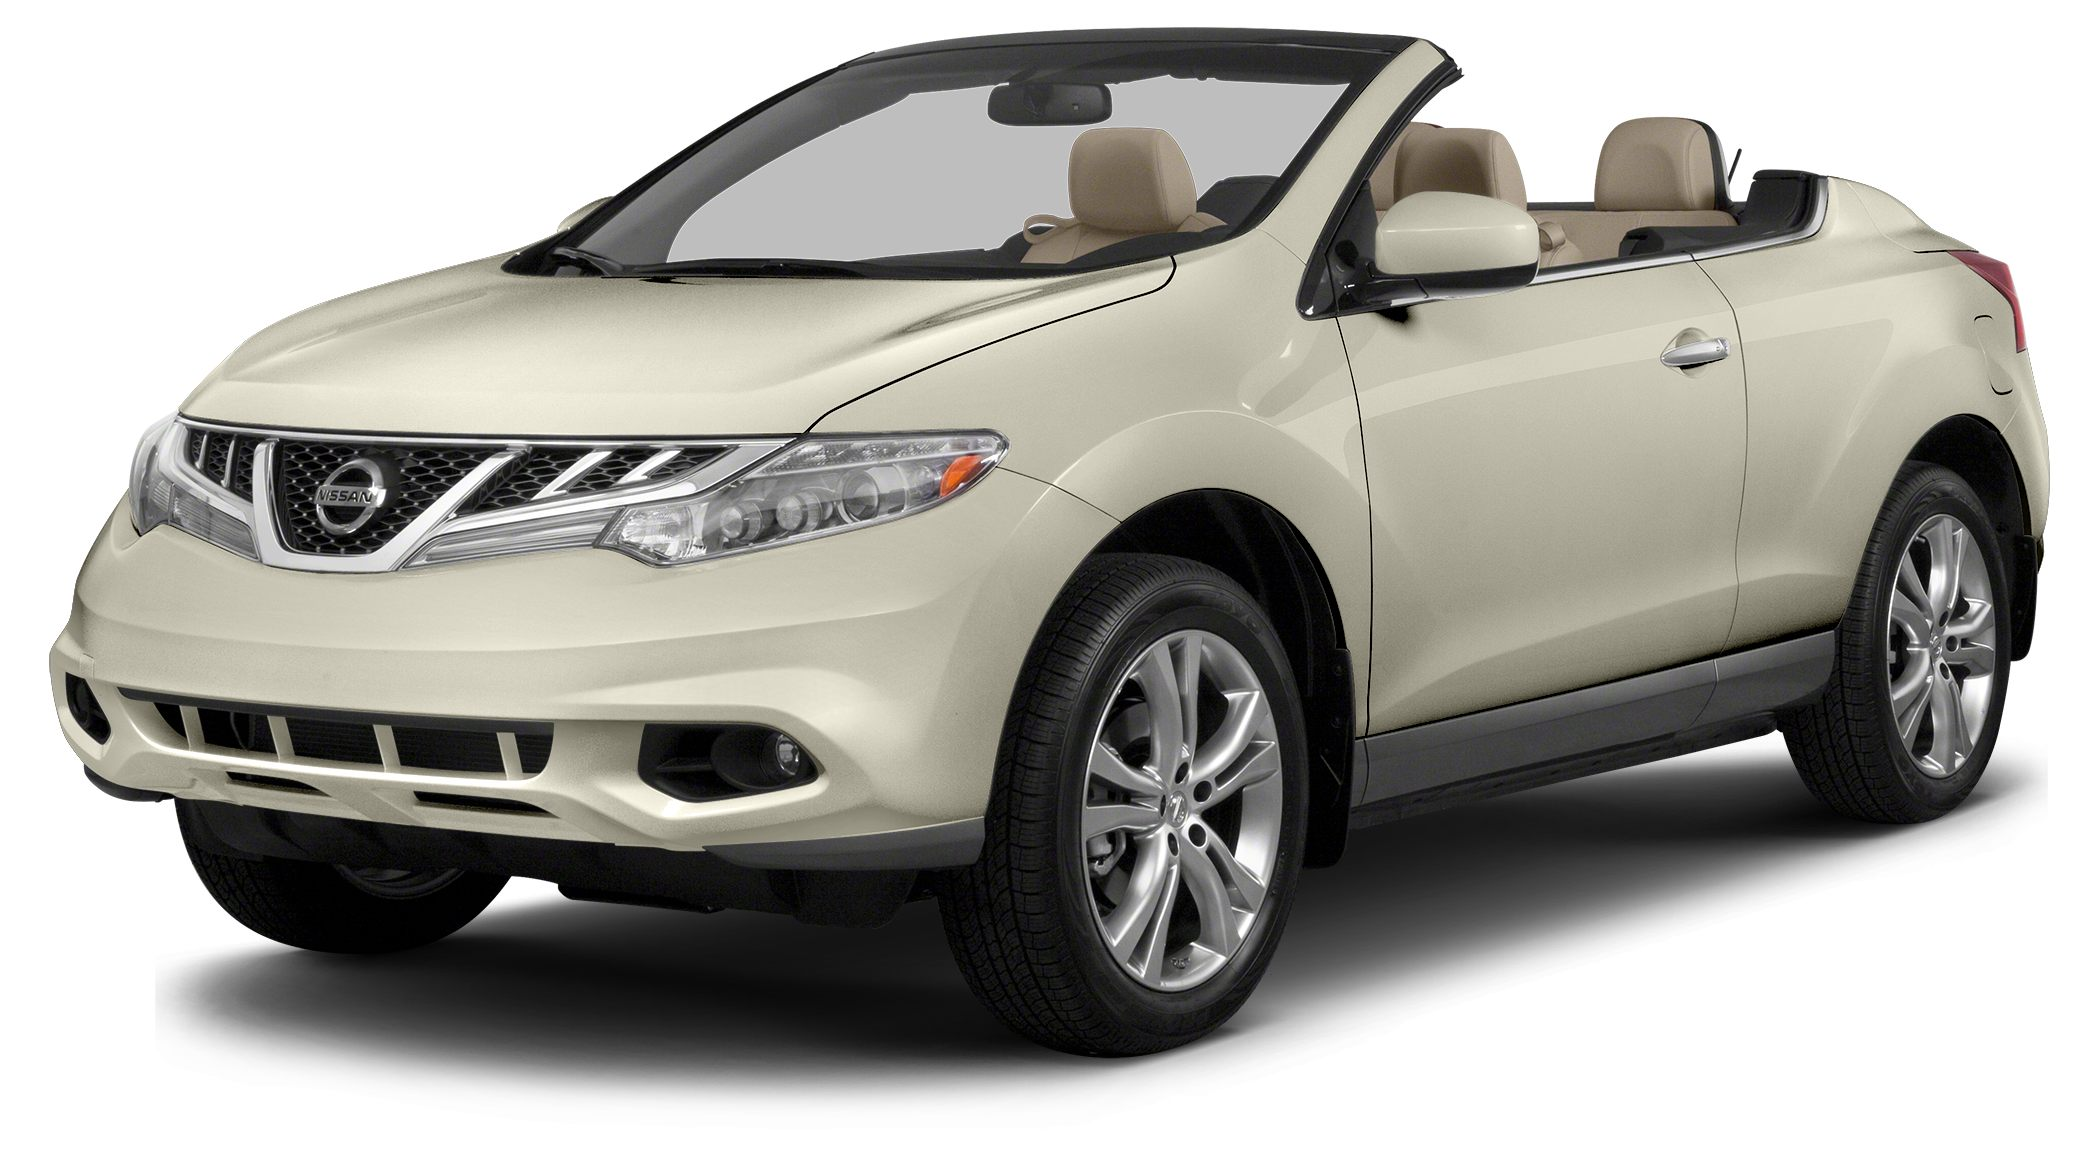 2014 Nissan Murano CrossCabriolet Base Here at Lake Keowee Ford our customers come first and our p